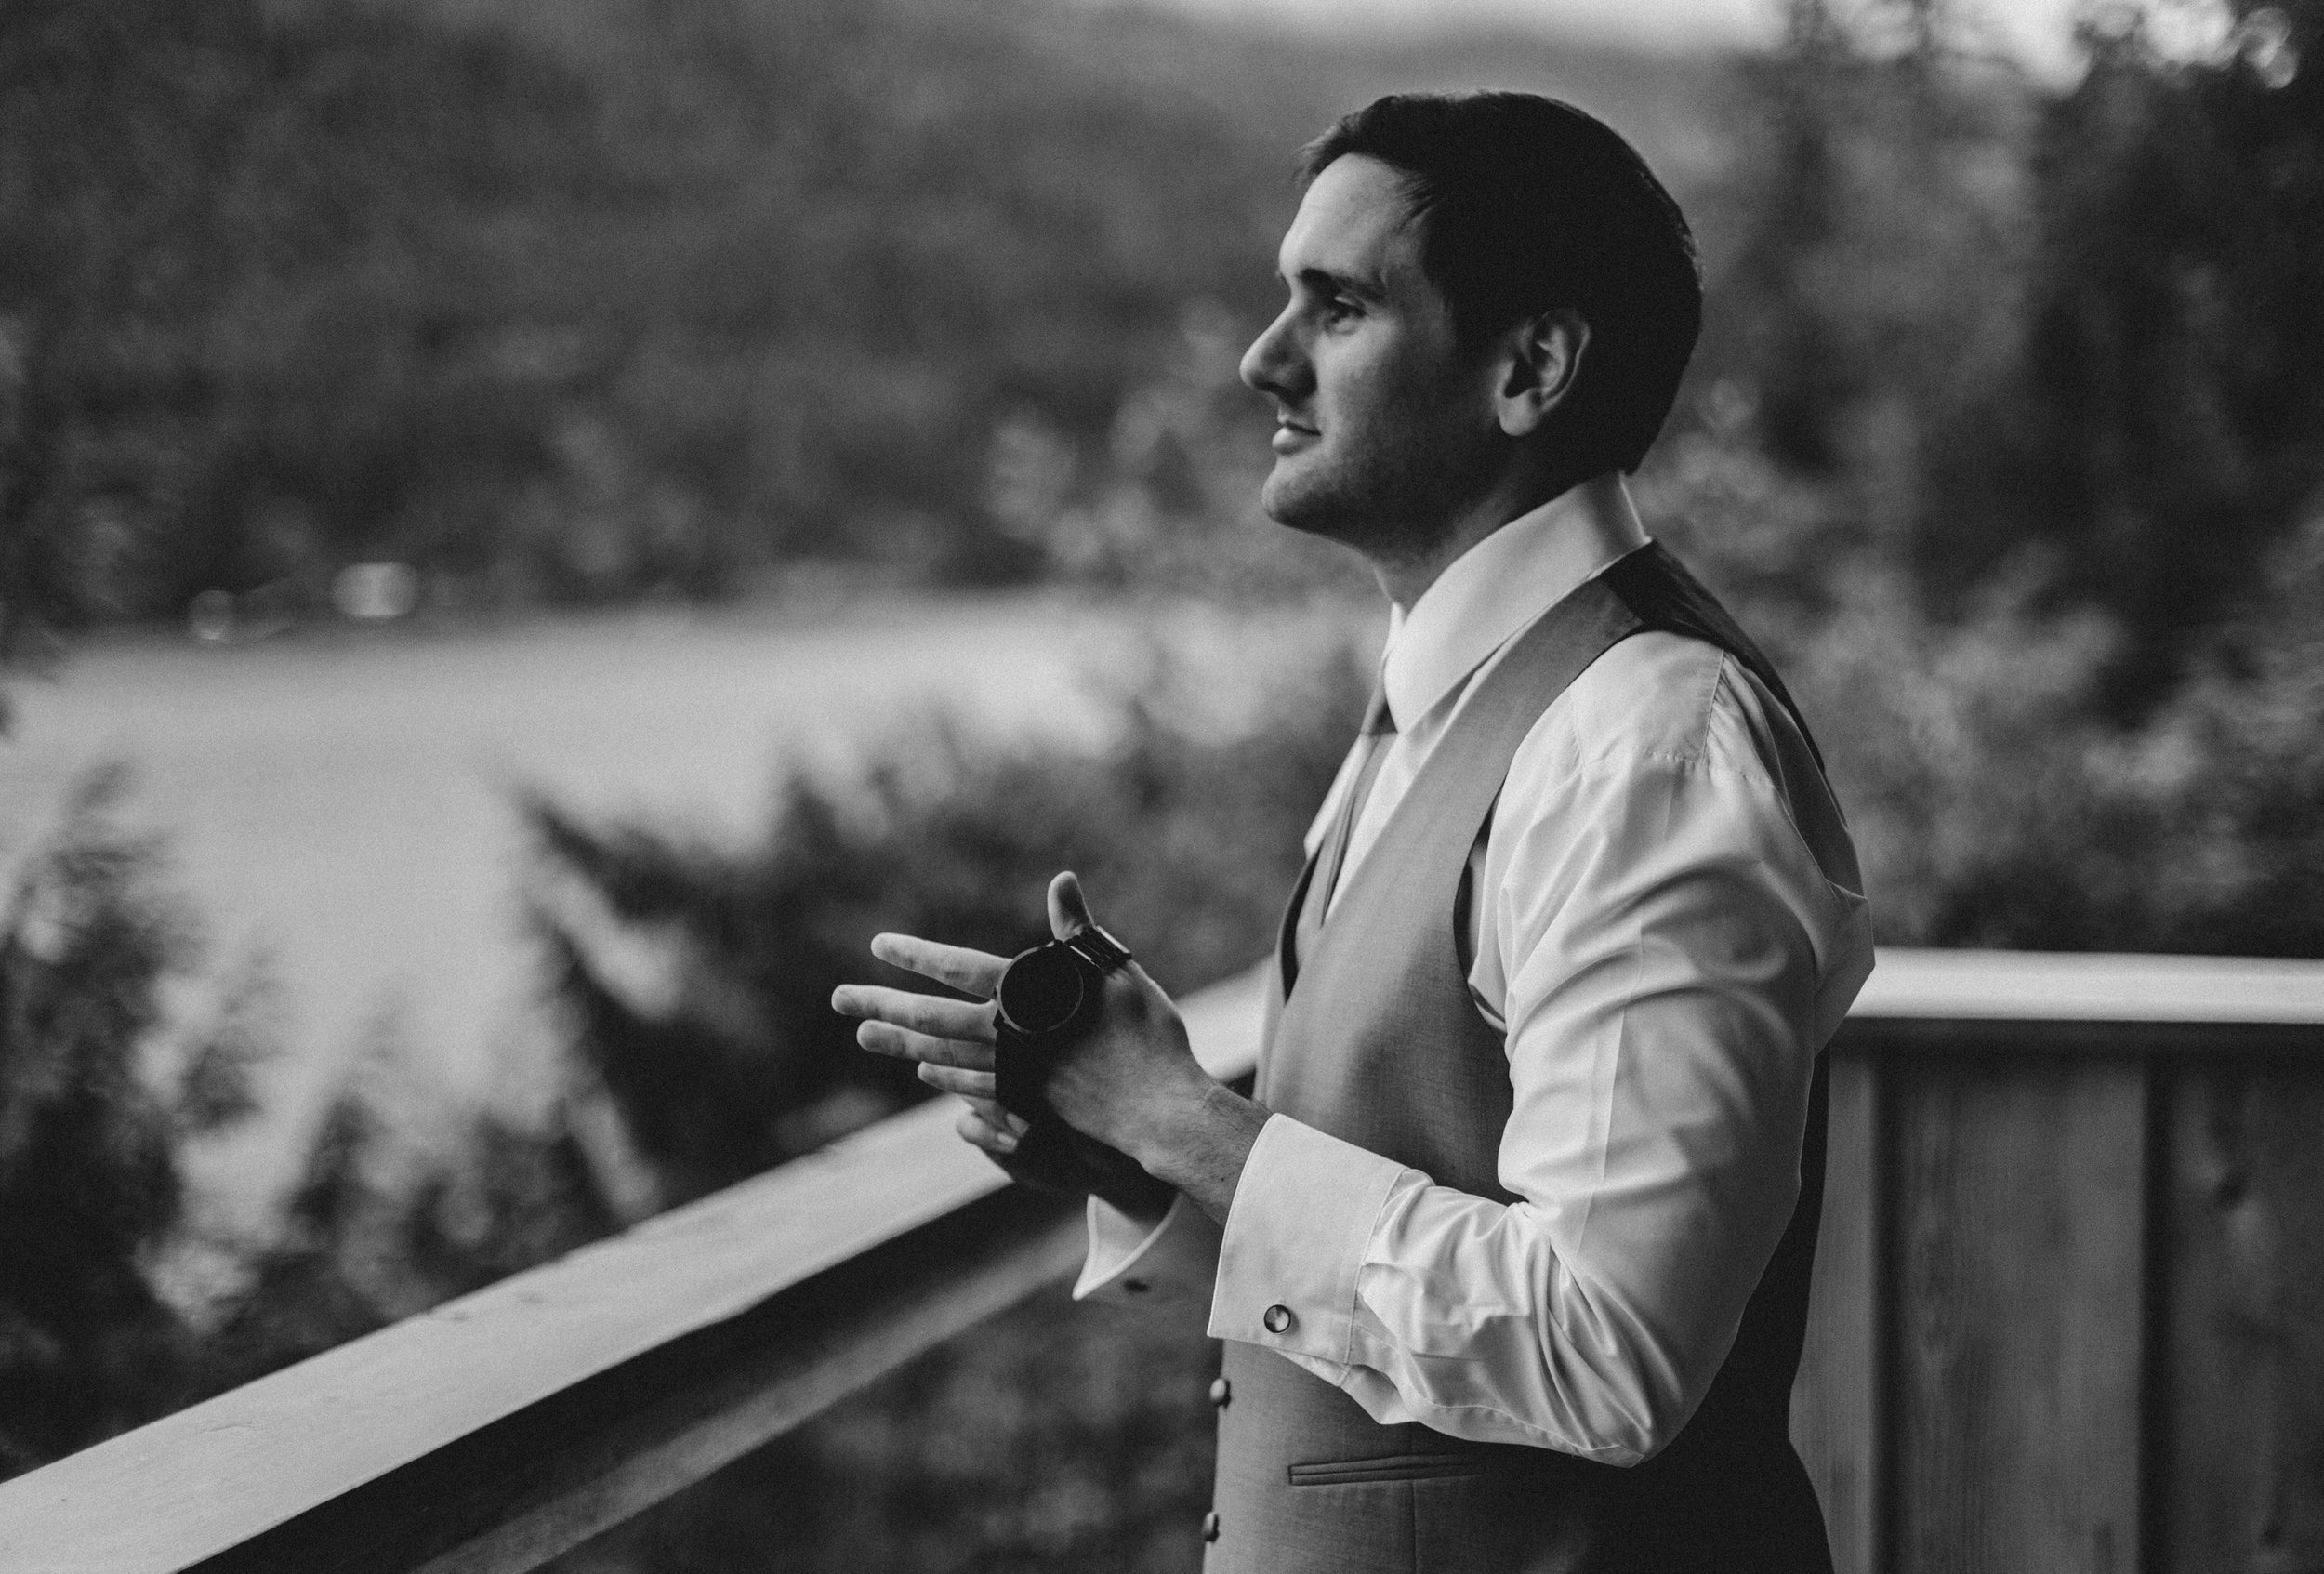 West Coast Wilderness Lodge Wedding Photos - Vancouver Wedding Photographer & Videographer - Sunshine Coast Wedding Photos - Sunshine Coast Wedding Photographer - Jennifer Picard Photography - IMG_9900.jpg